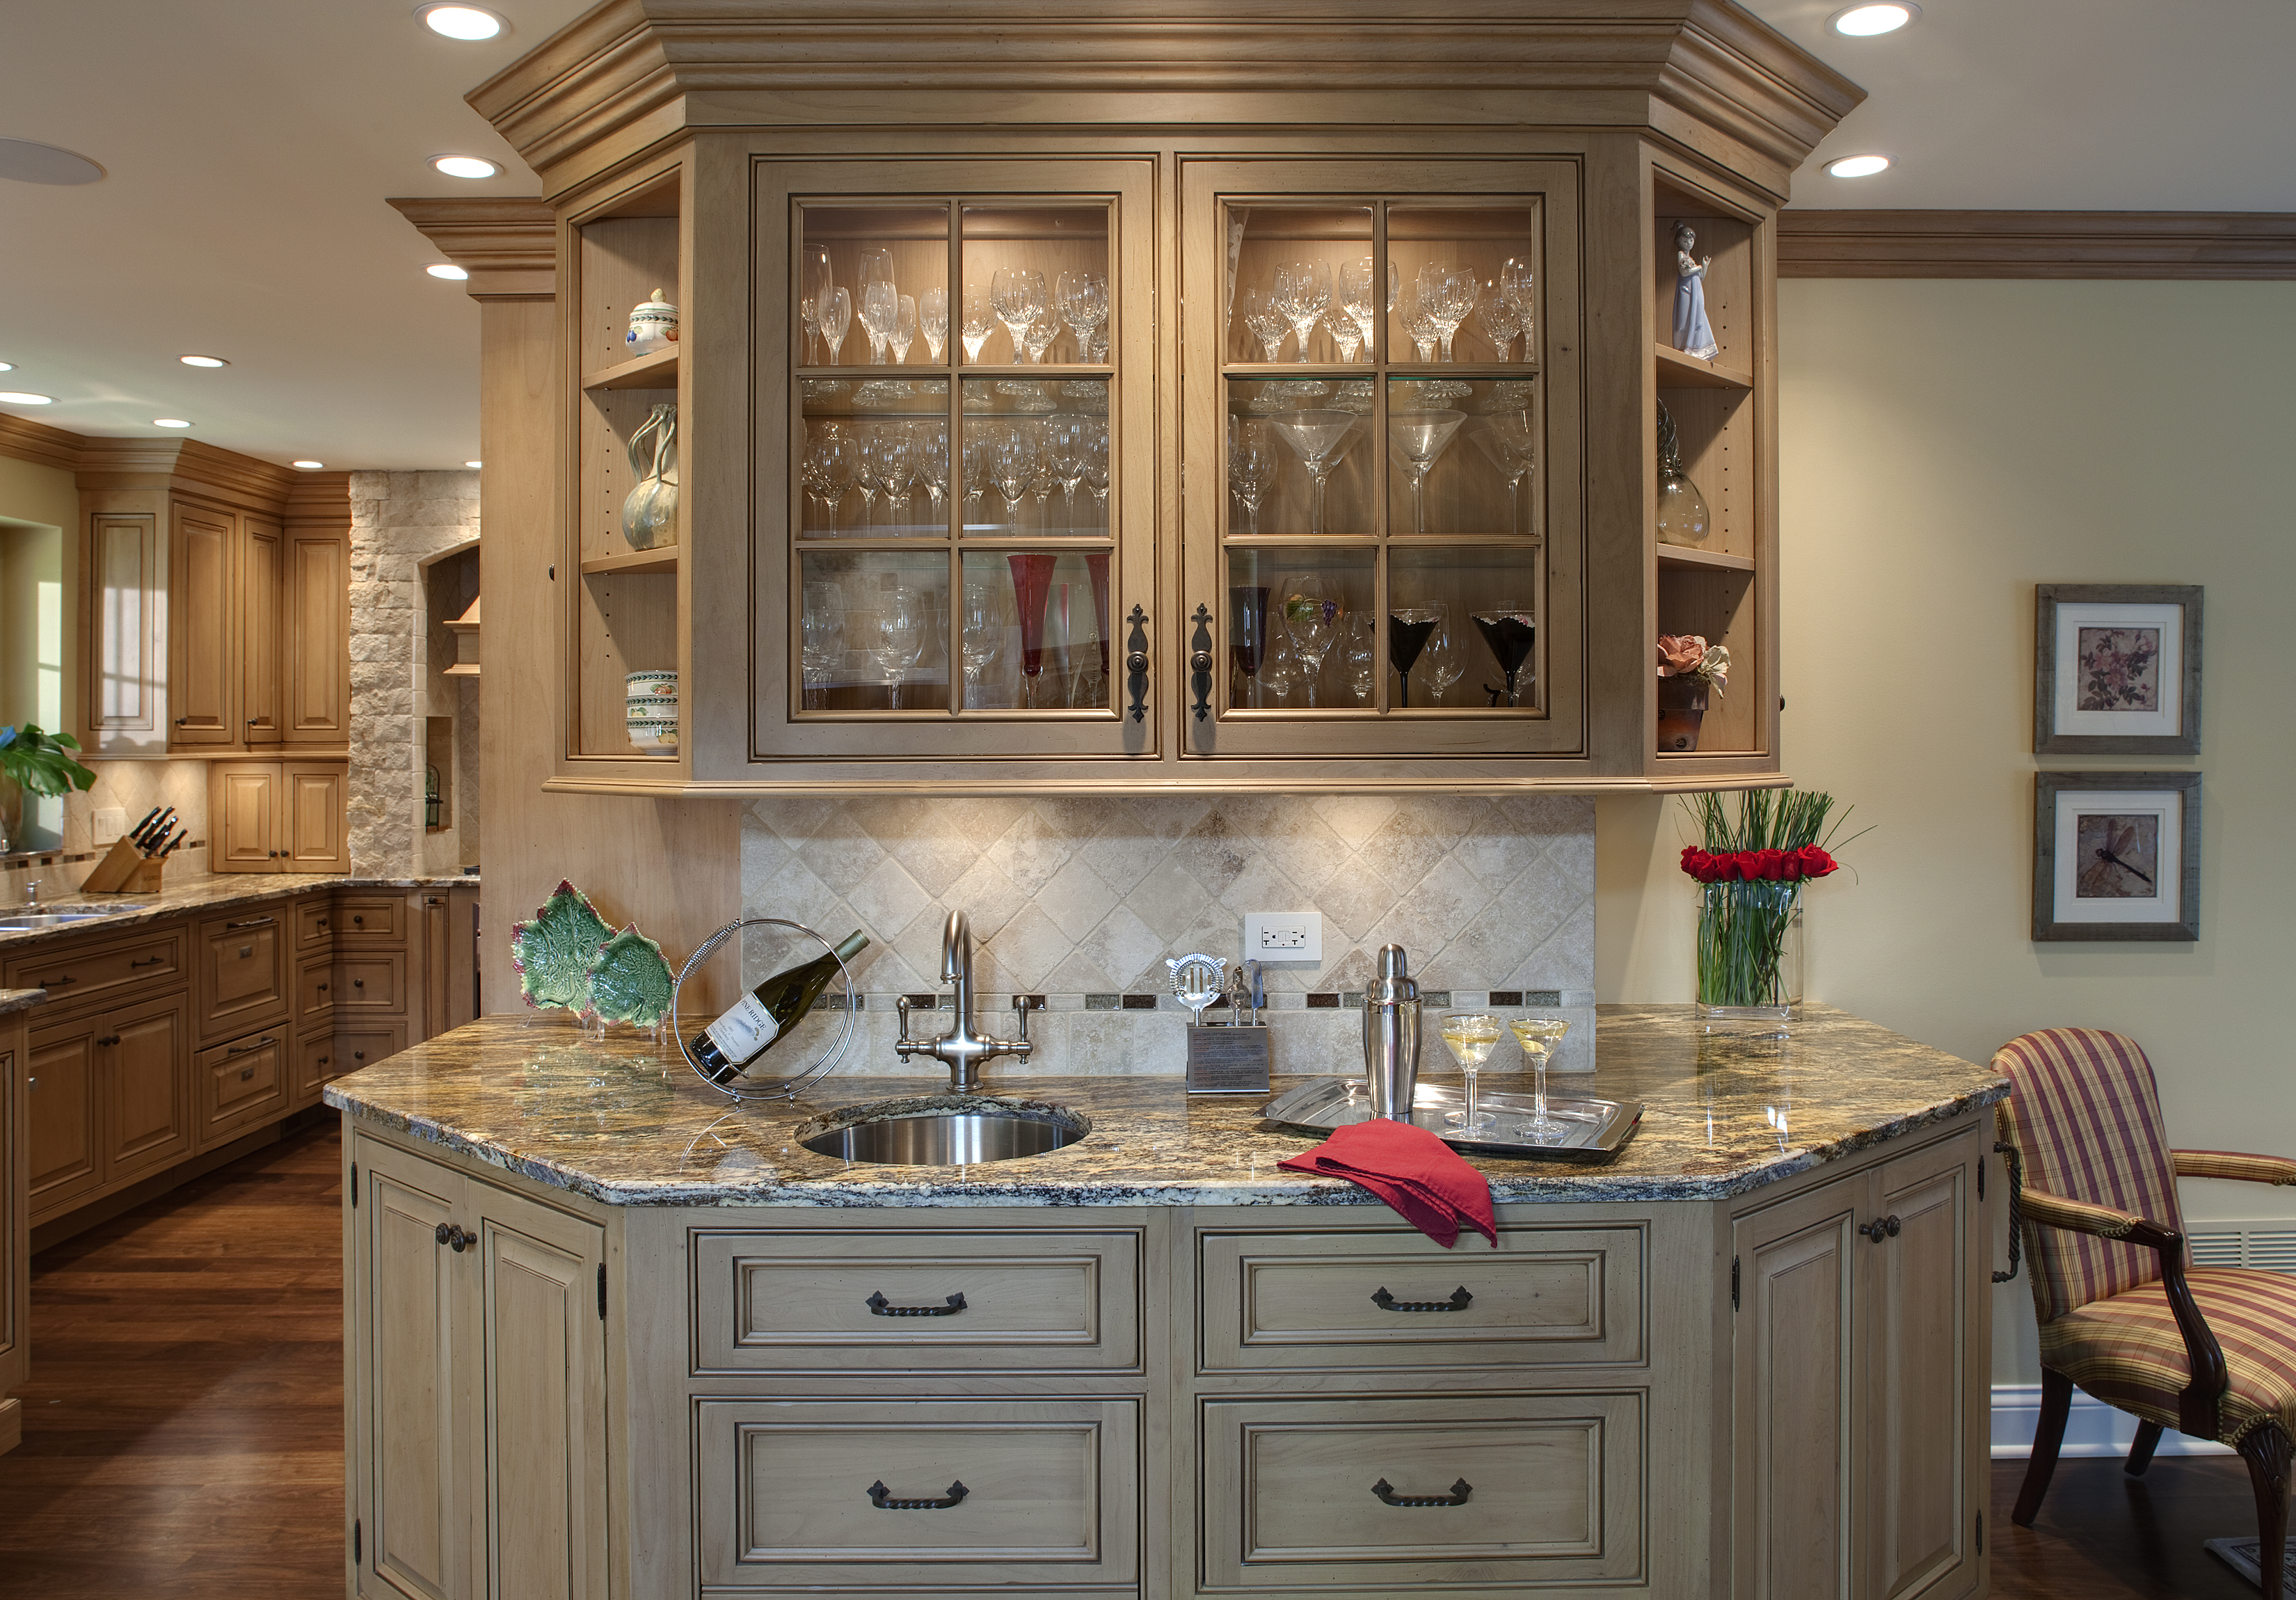 Best Kitchen Gallery: Tuscan Style Kitchen Cabi With White And Wooden Tone of Tuscan Kitchen Cabinets on rachelxblog.com